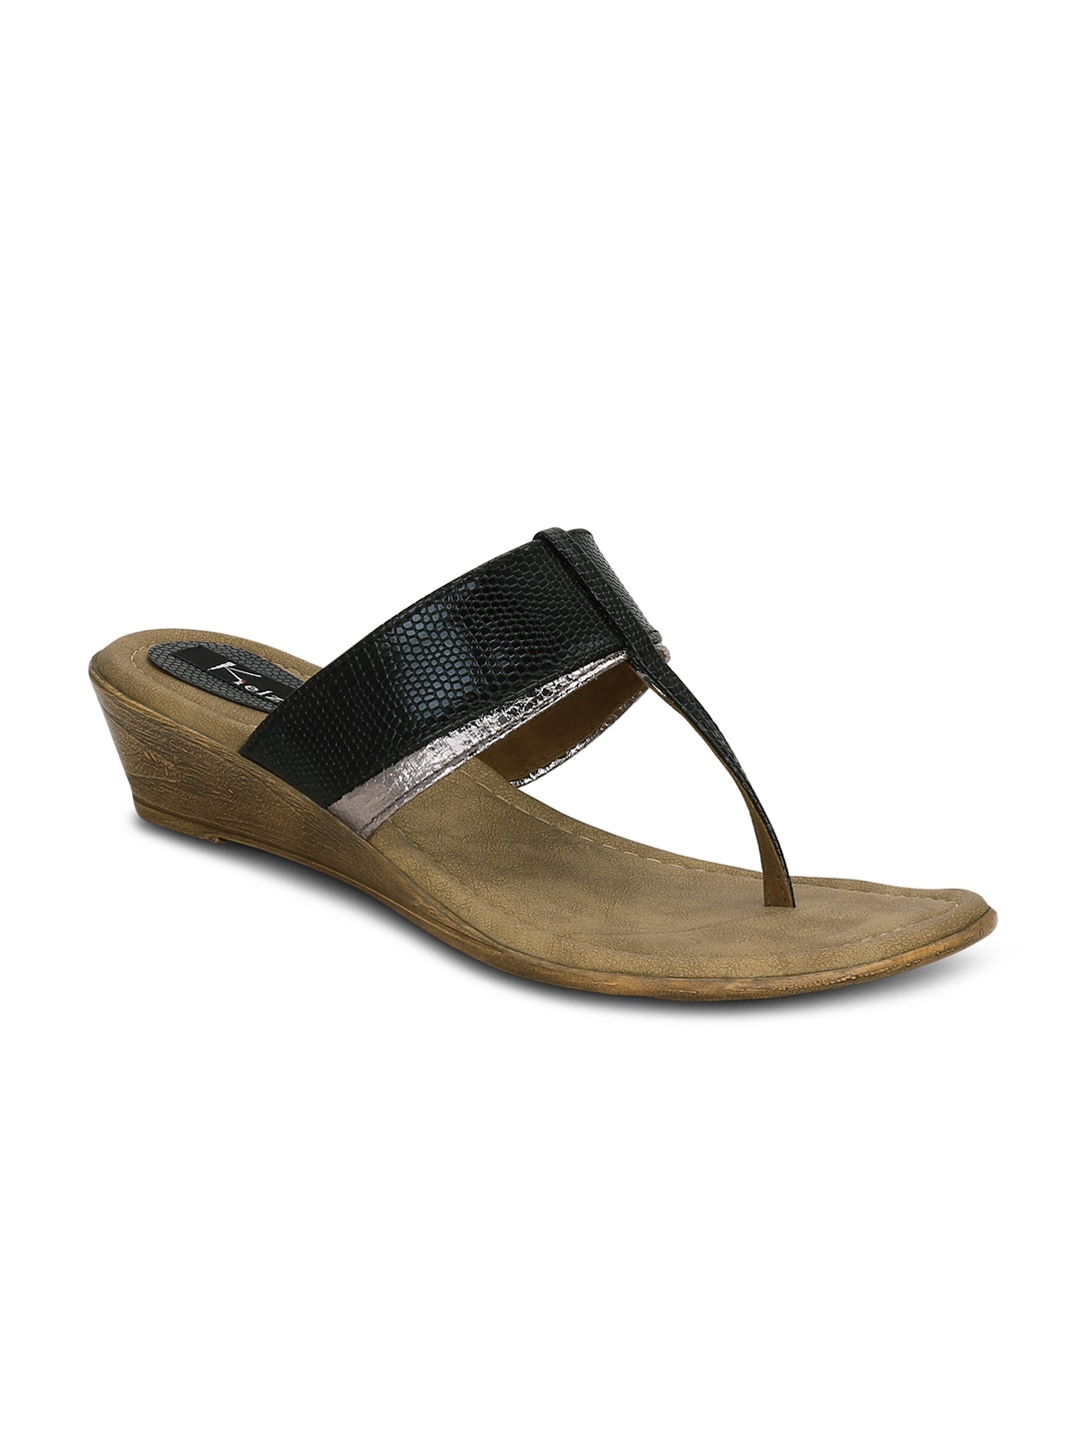 f9938d1d00c Womens Wedges - Buy Wedges for Women Online at Best Price